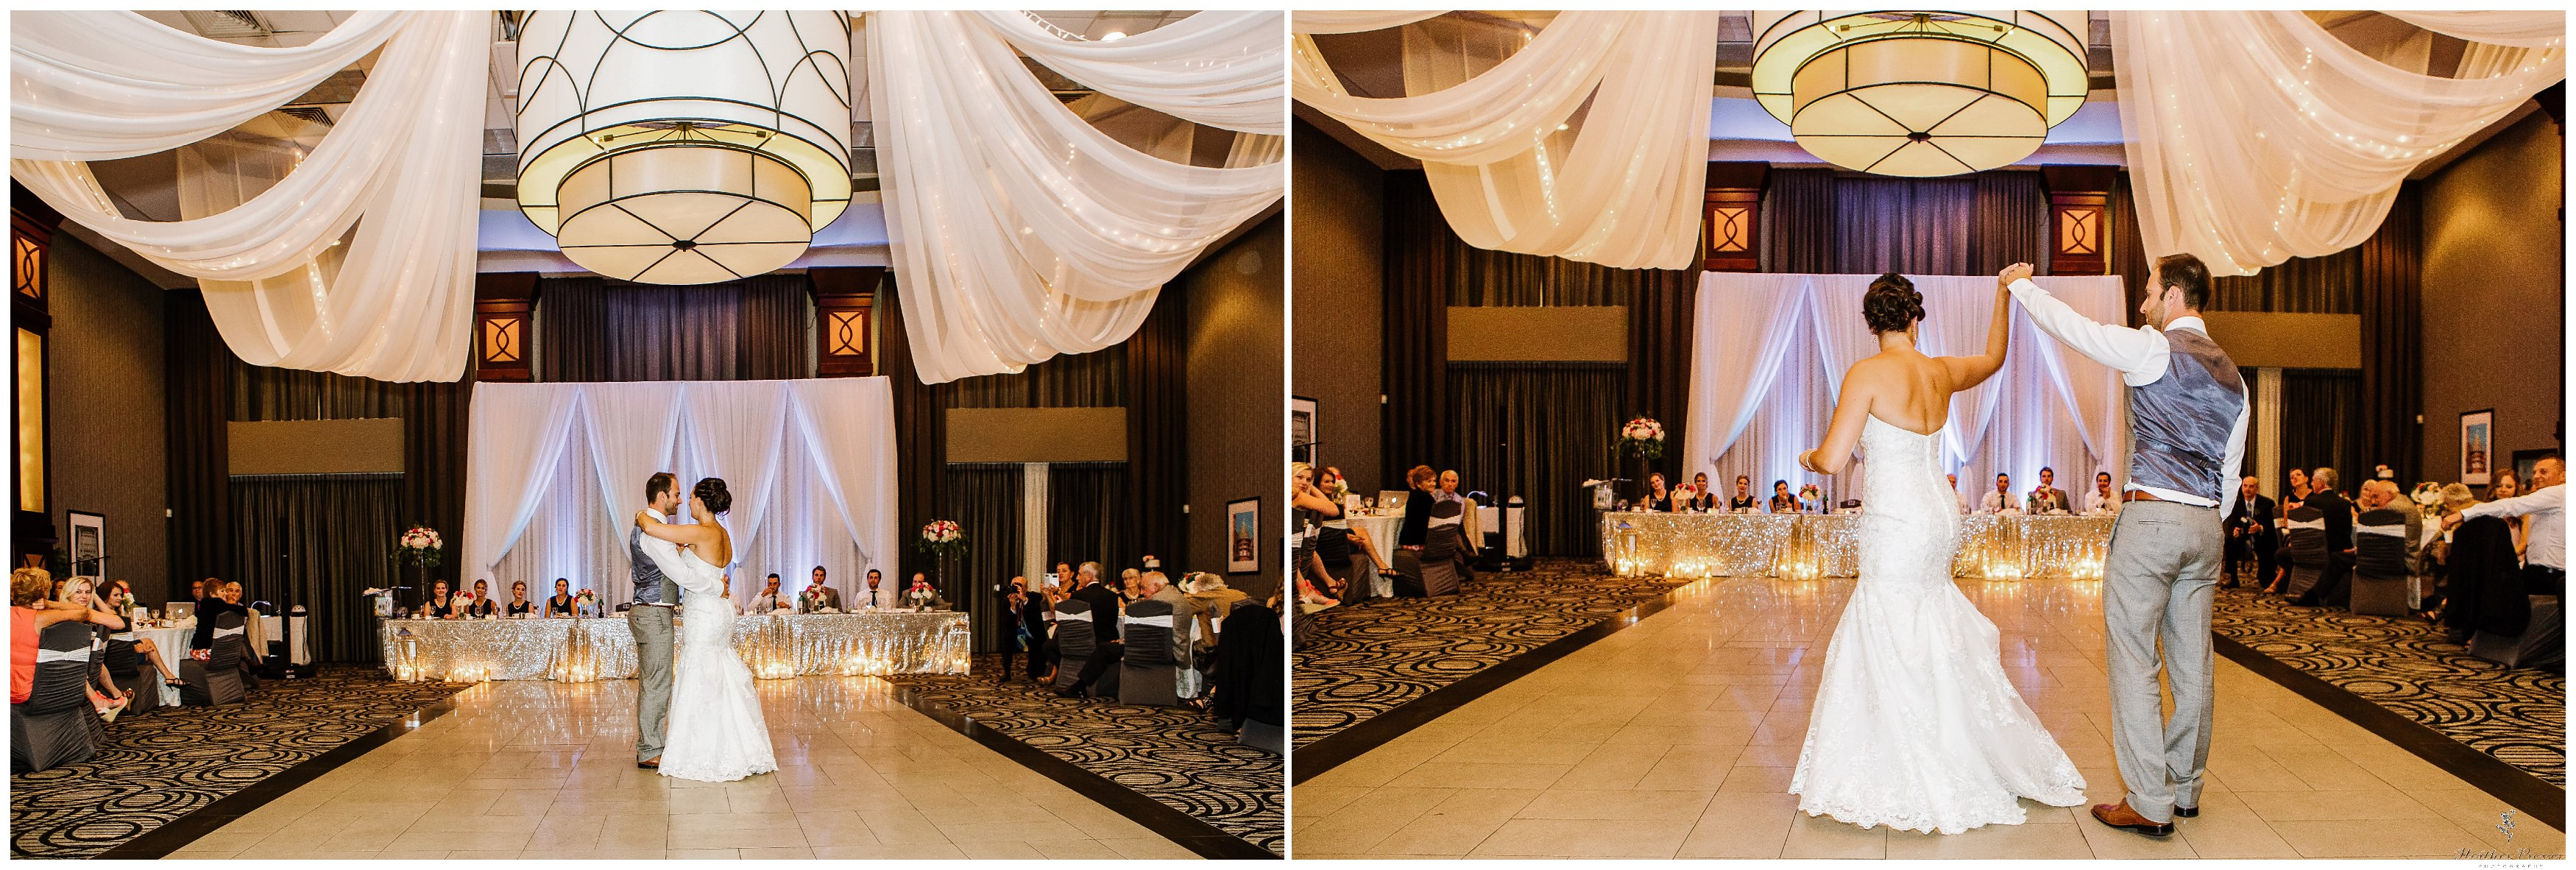 Oshawa Parkwood Ajax convention Centre wedding.